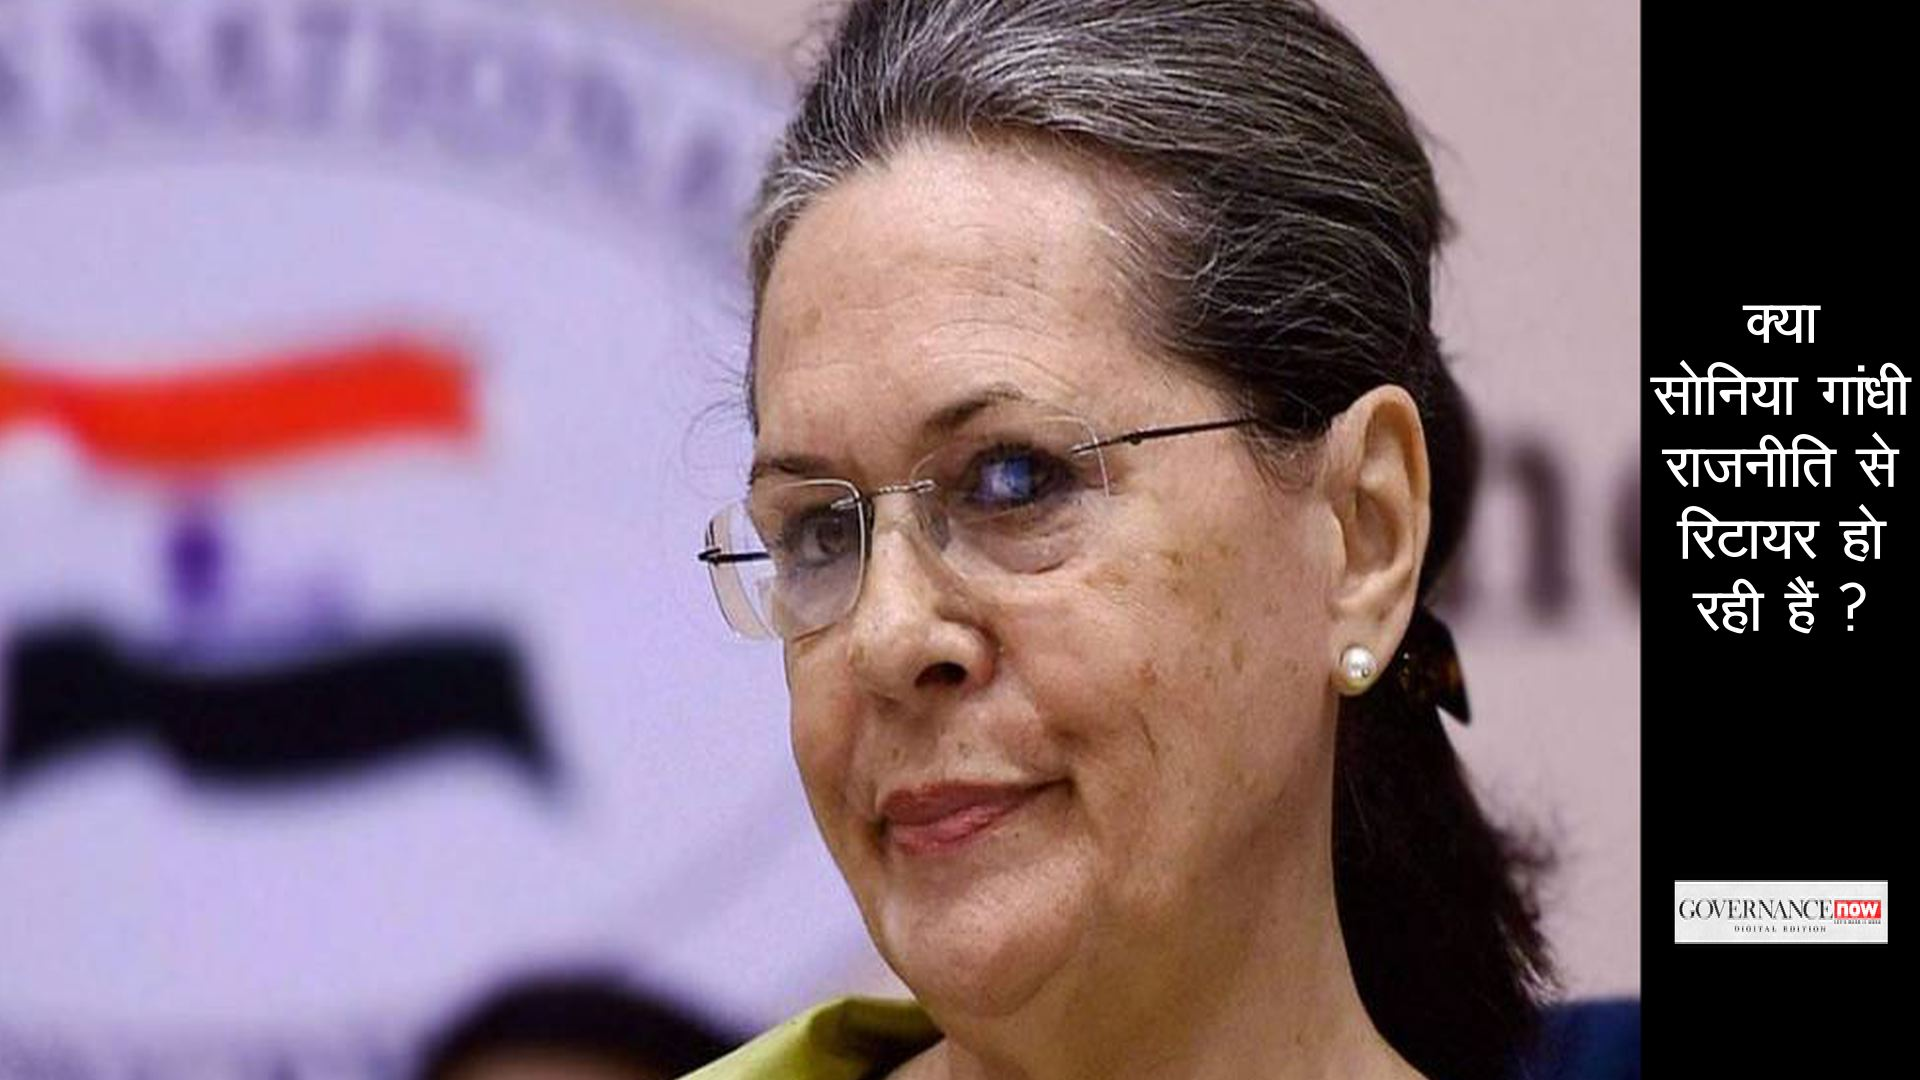 Is Sonia Gandhi retiring from politics ?